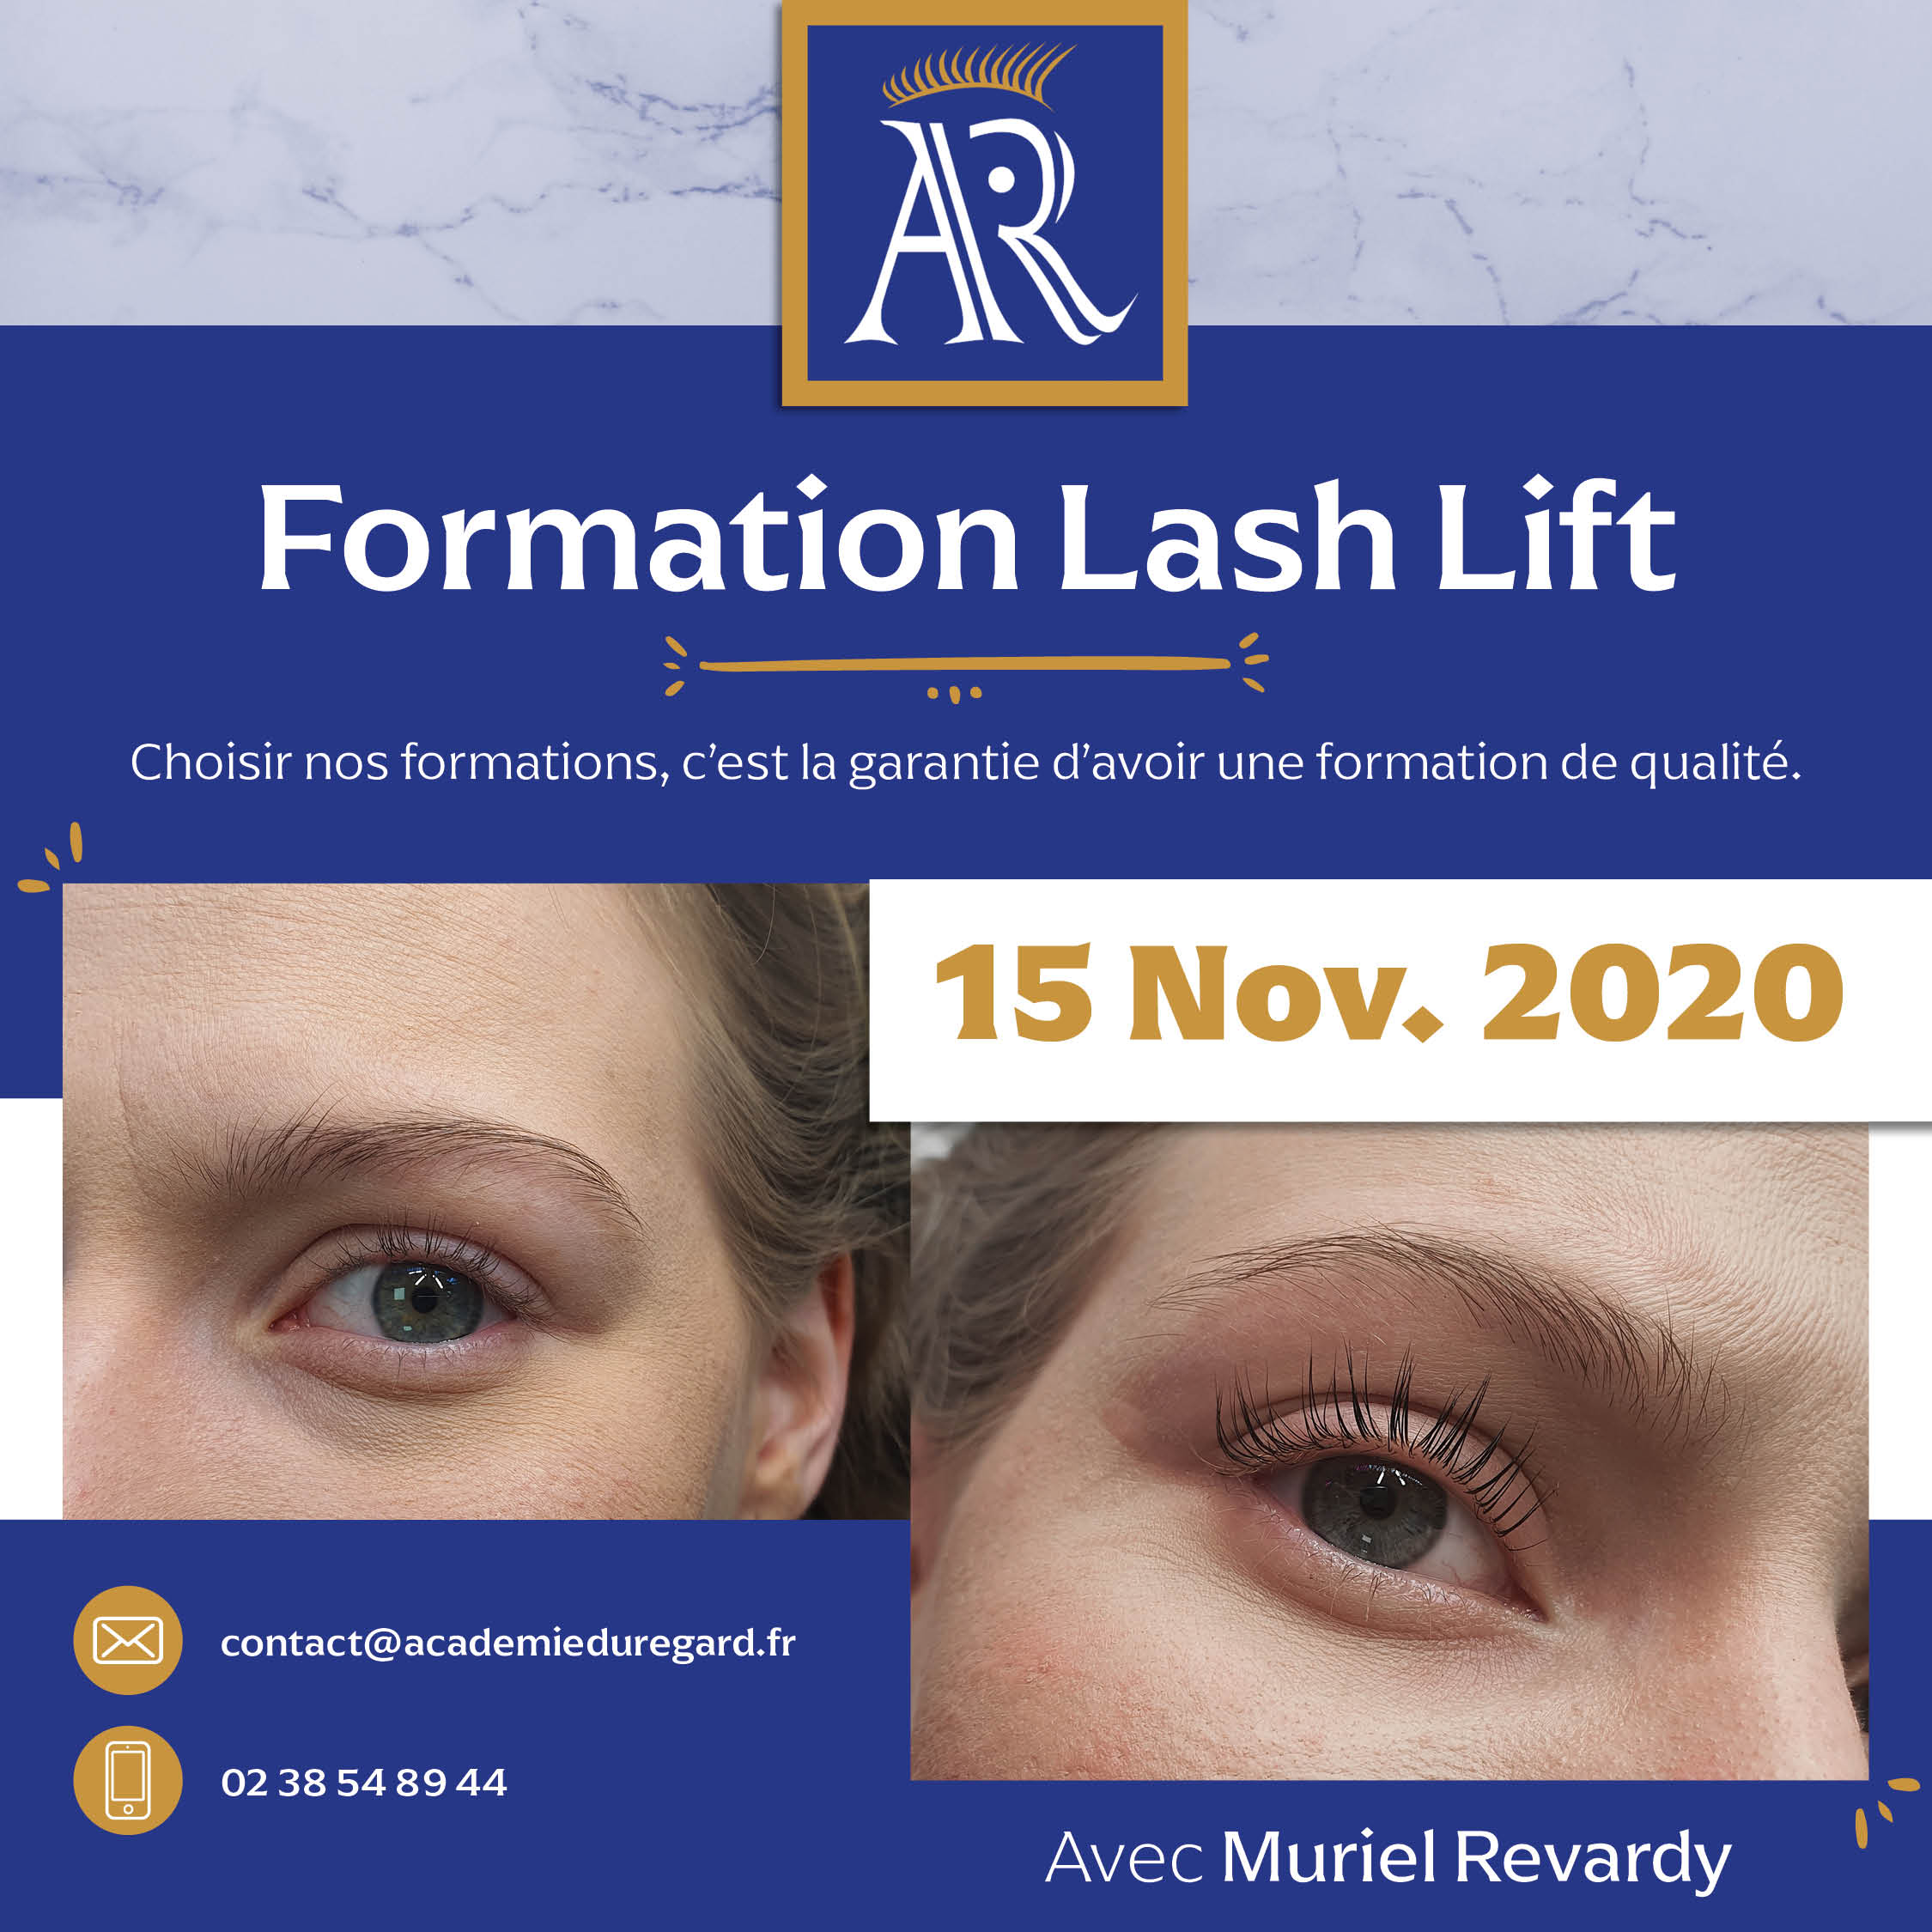 academie-du-regard-formation-lash-lift-1